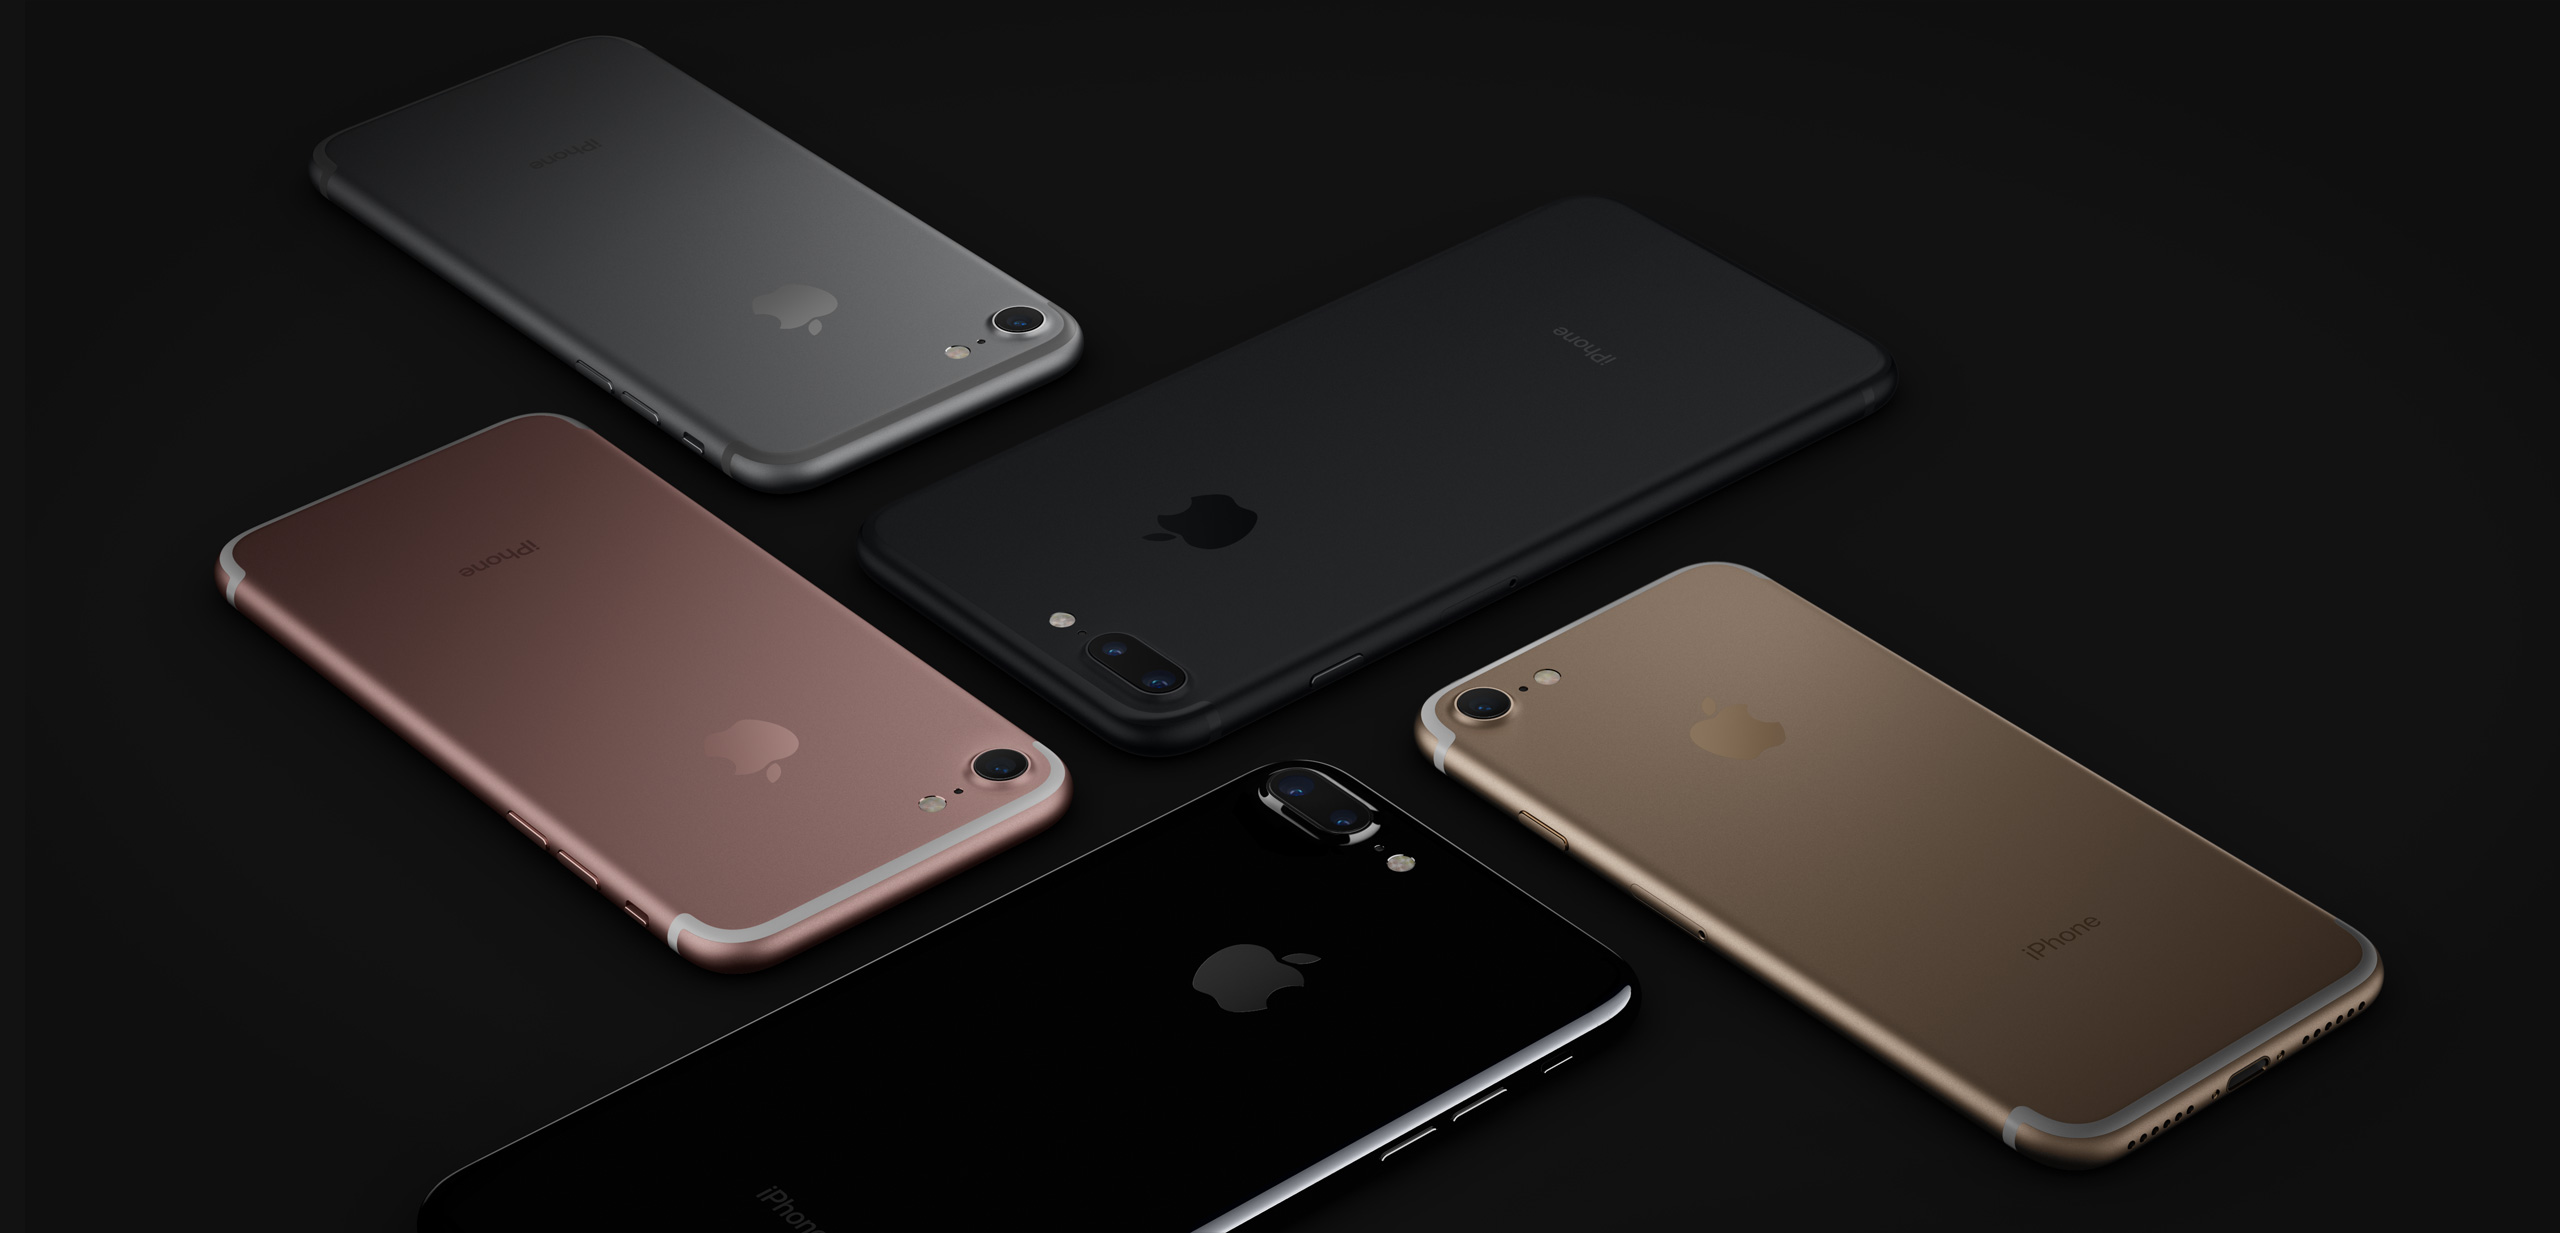 iphone 7 and iphone 7 plus pricing 649 and 769 and key